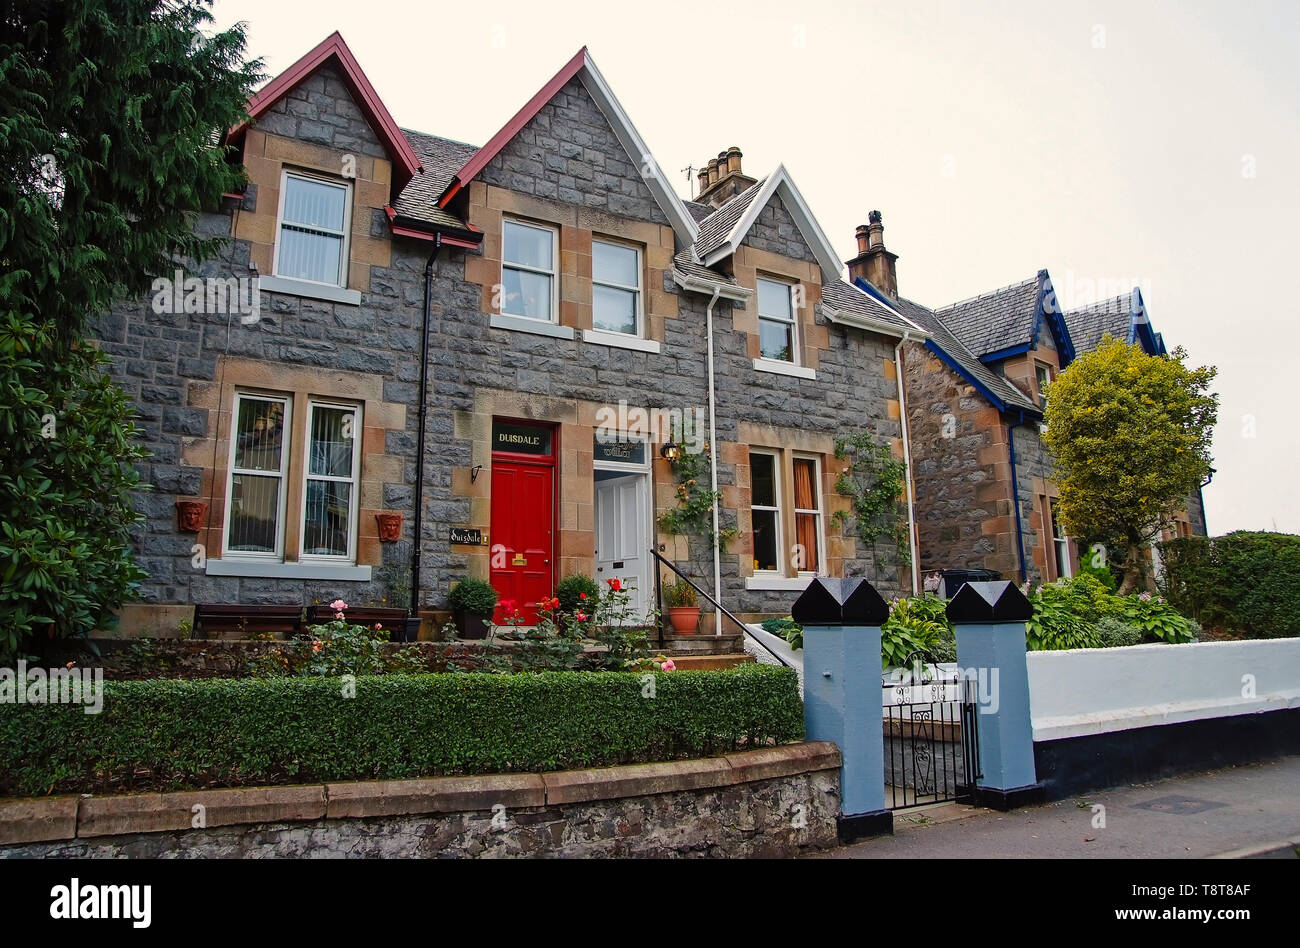 Oban, United Kingdom - February 20, 2010: Duisdale house hotel. Victorian style building. Architecture and design, Stylish accommodation, Vacation and wanderlust - Stock Image